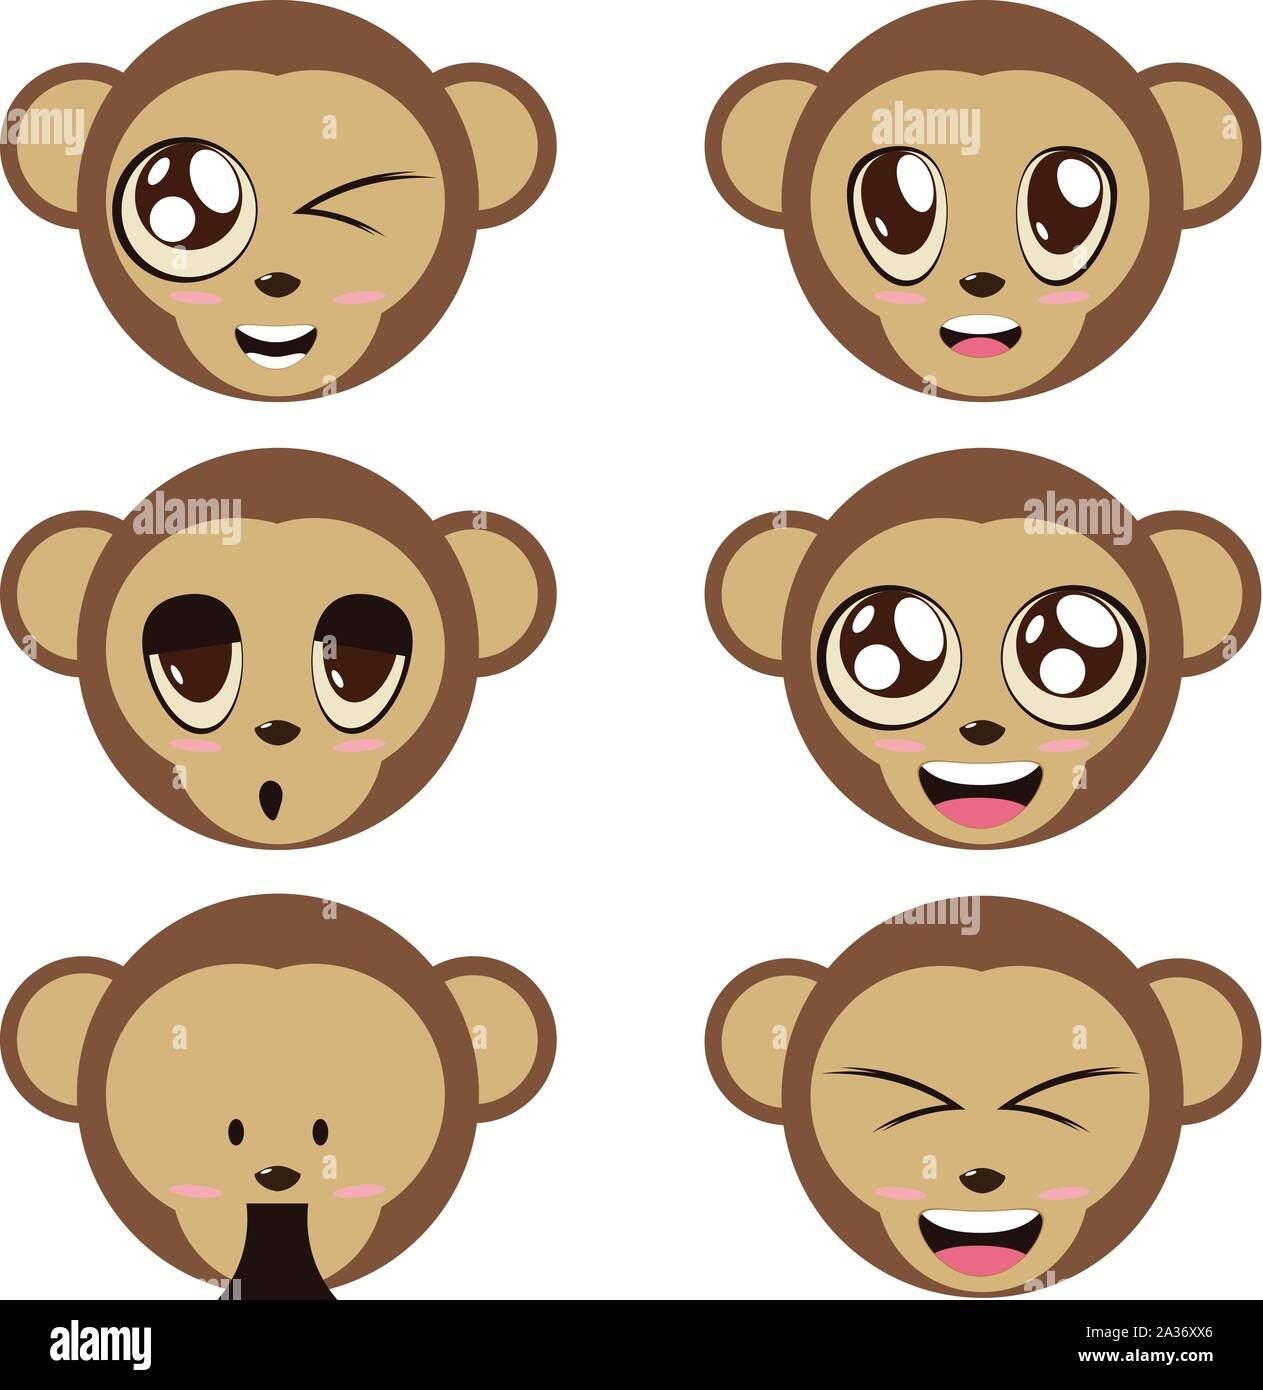 Illustration Of A Cute Cartoon Monkeys Face In Various Emotions Stock Vector Image Art Alamy